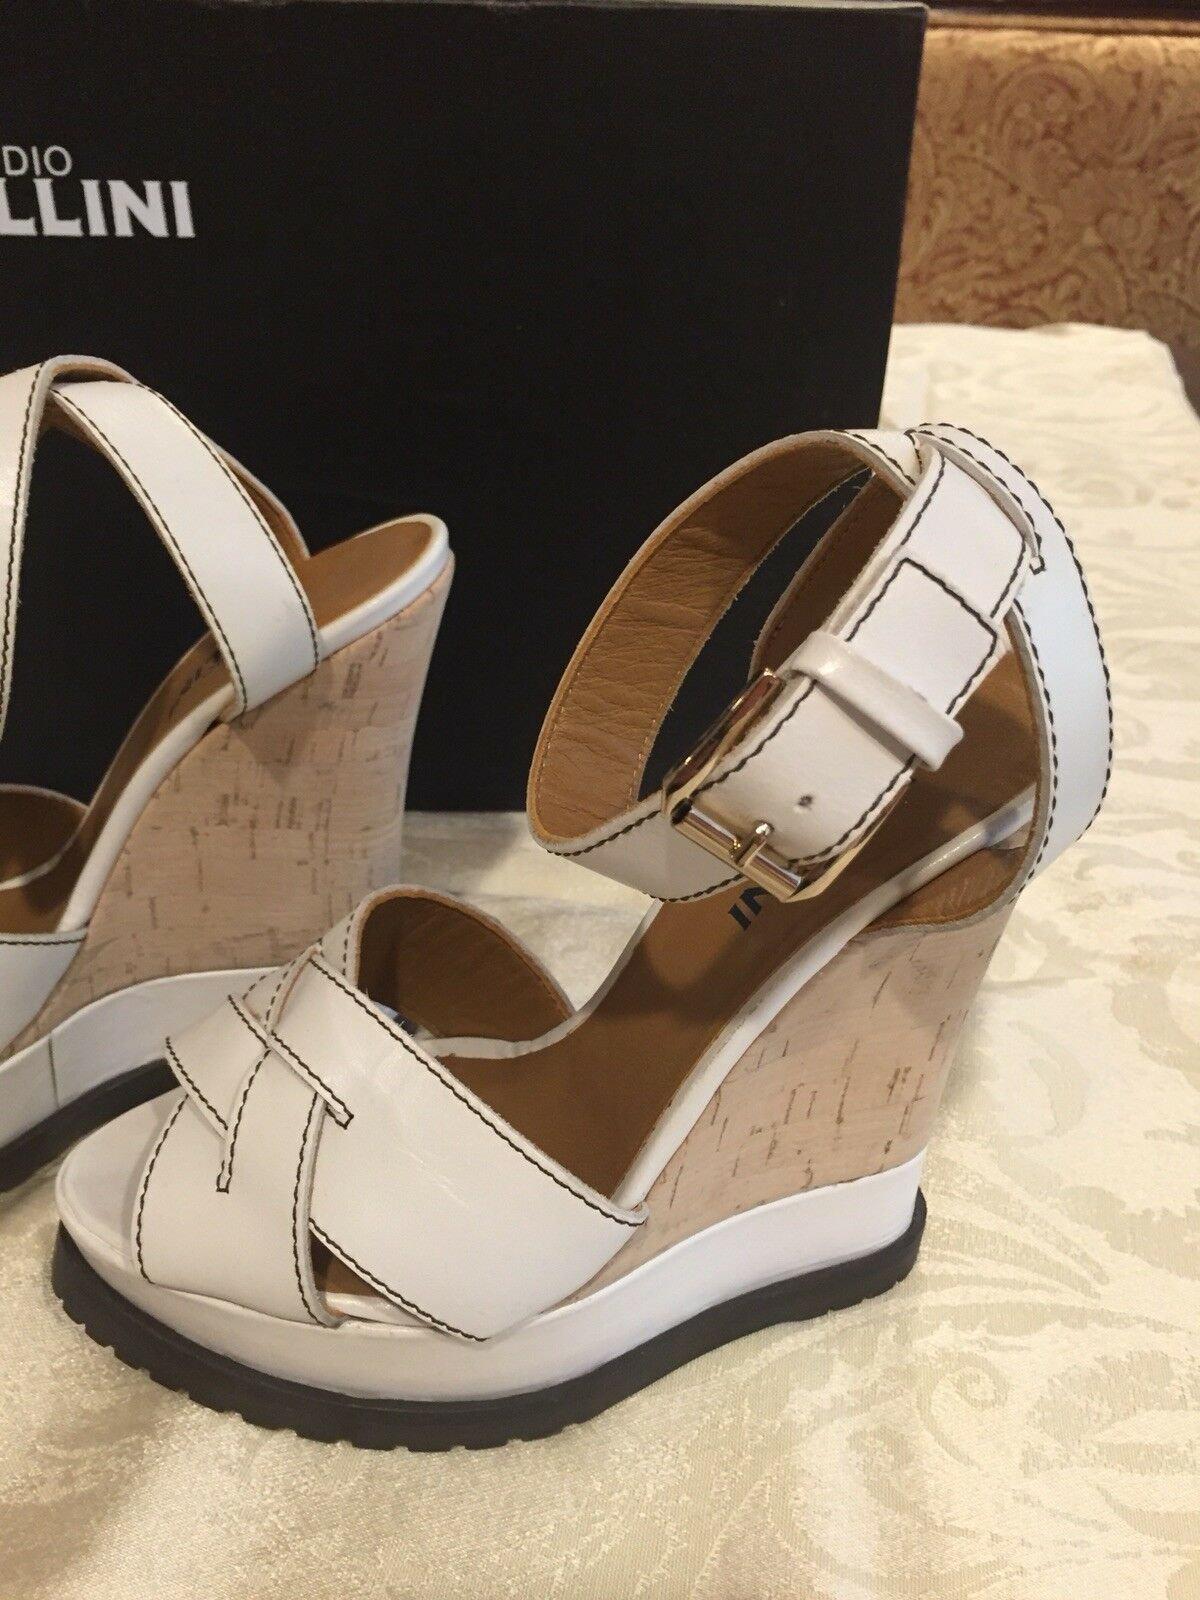 Studio Pollini bianca Italian Leather Platform Sandal, Size 7, Leather Italian 608142